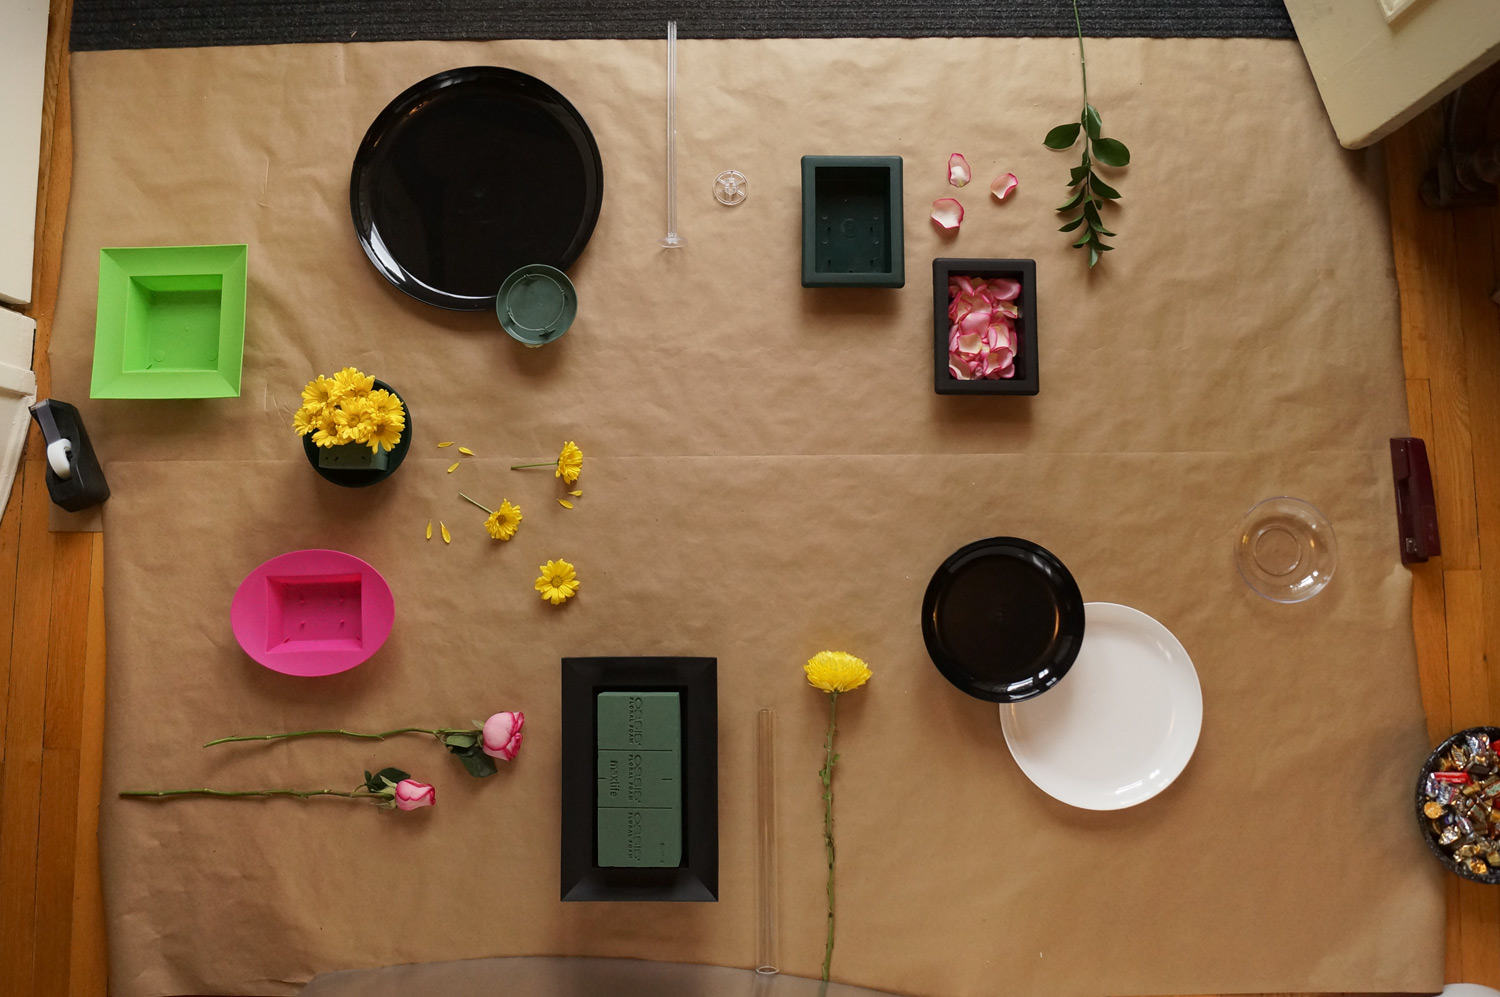 BTS_smithers-oasis_product_guide_still_life_photos_6